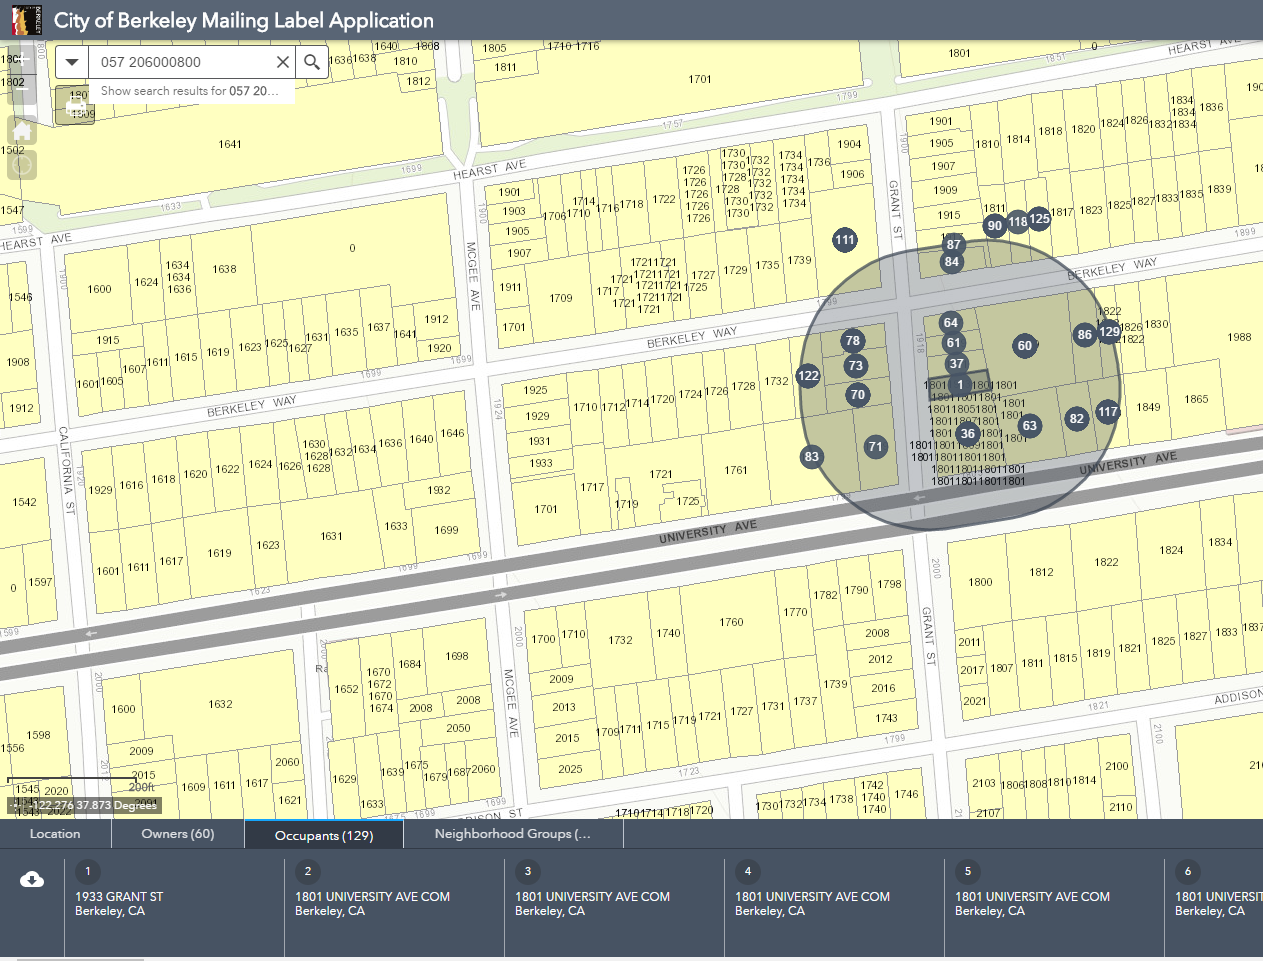 click the owner occupants or neighborhood groups tabs to view the selected parcels and download the csv file